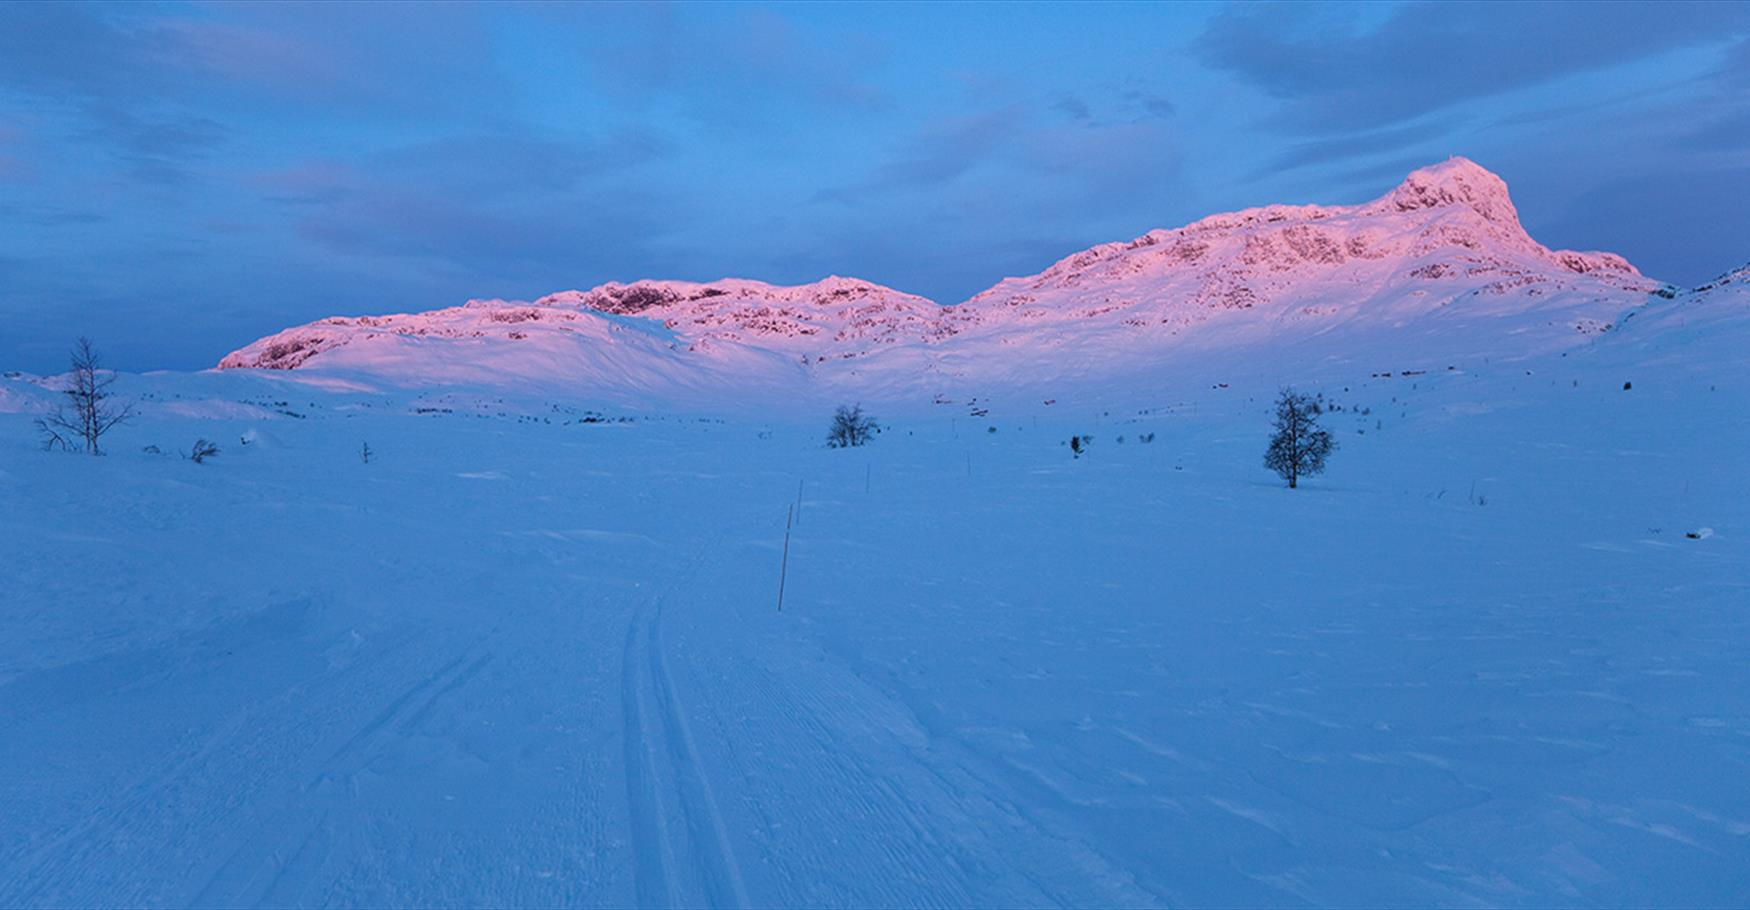 December morning in the cross country trails at Beitostølen with Bitihorn in the background.